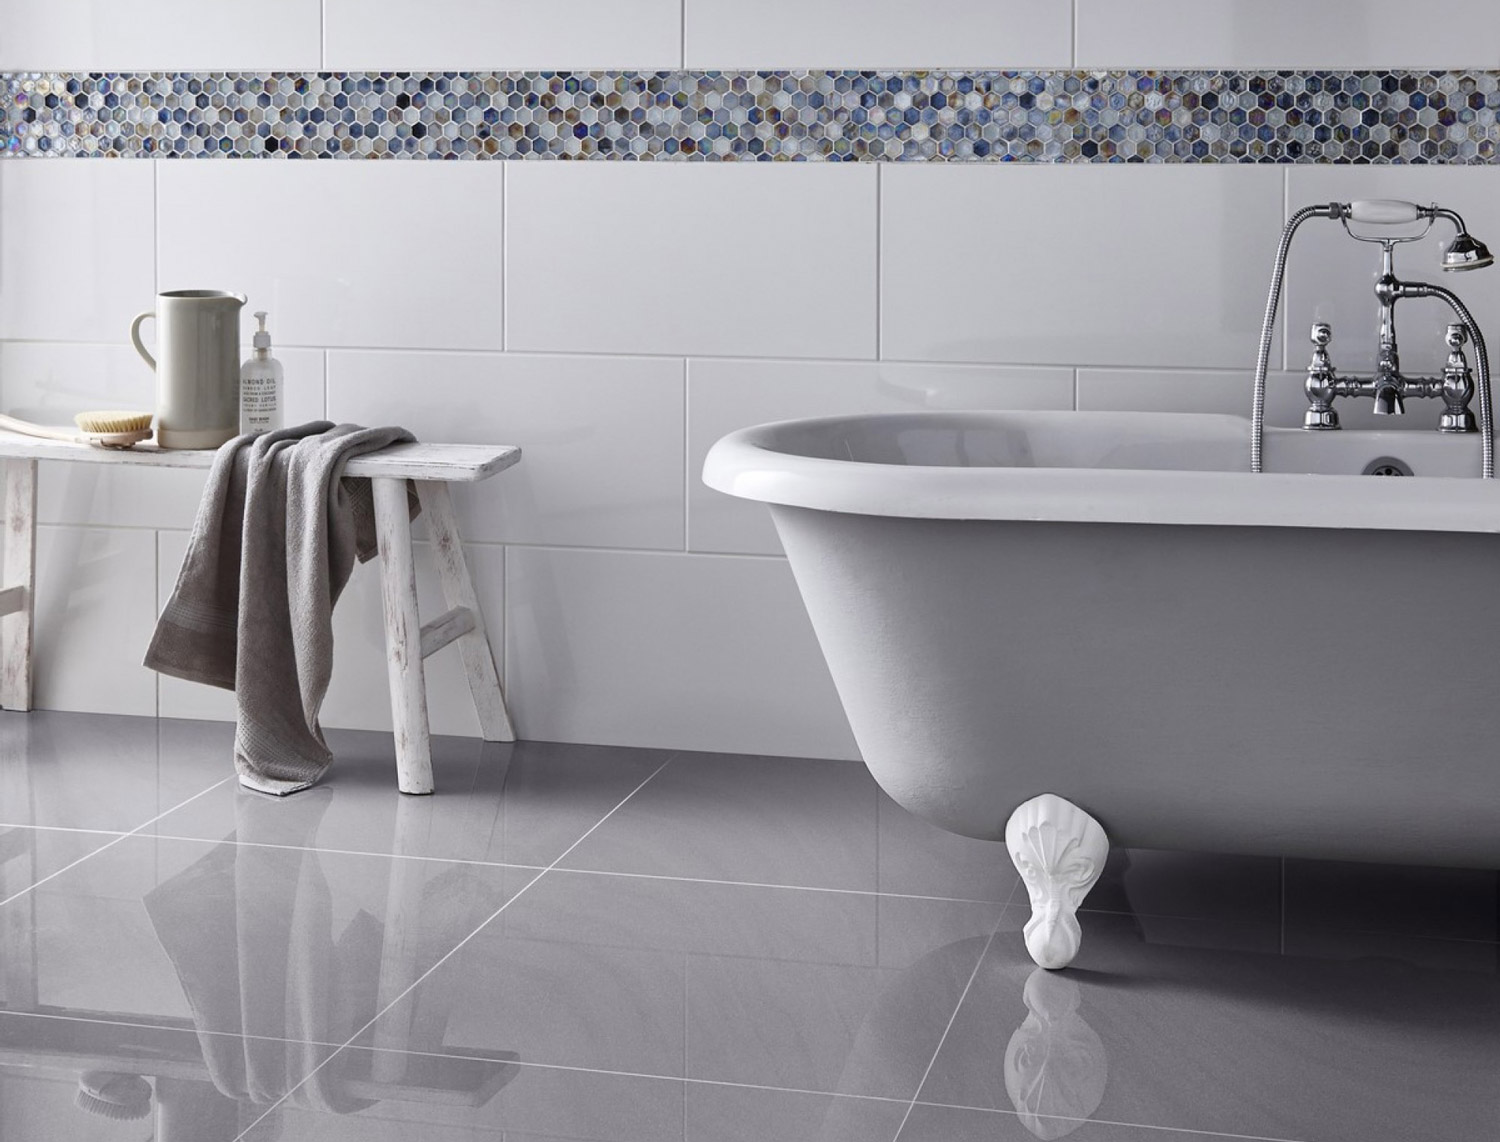 Dimensions Tiles and Bathrooms | Ceramic tiles and bathrooms, Frome ...